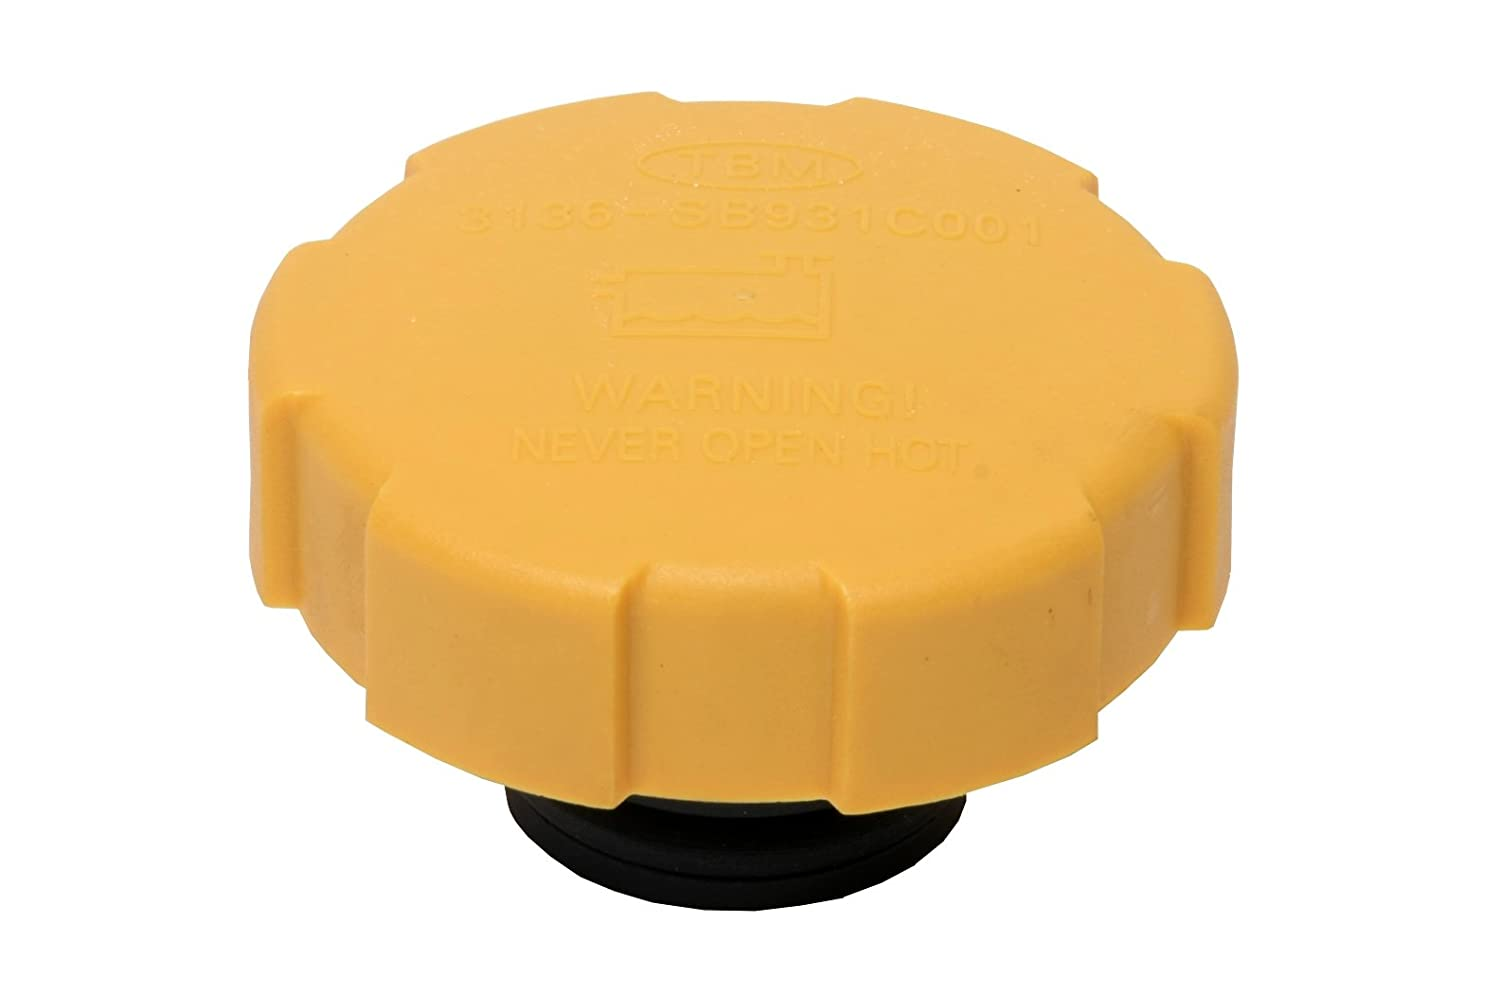 URO Parts (92 02 799) Expansion Tank Cap